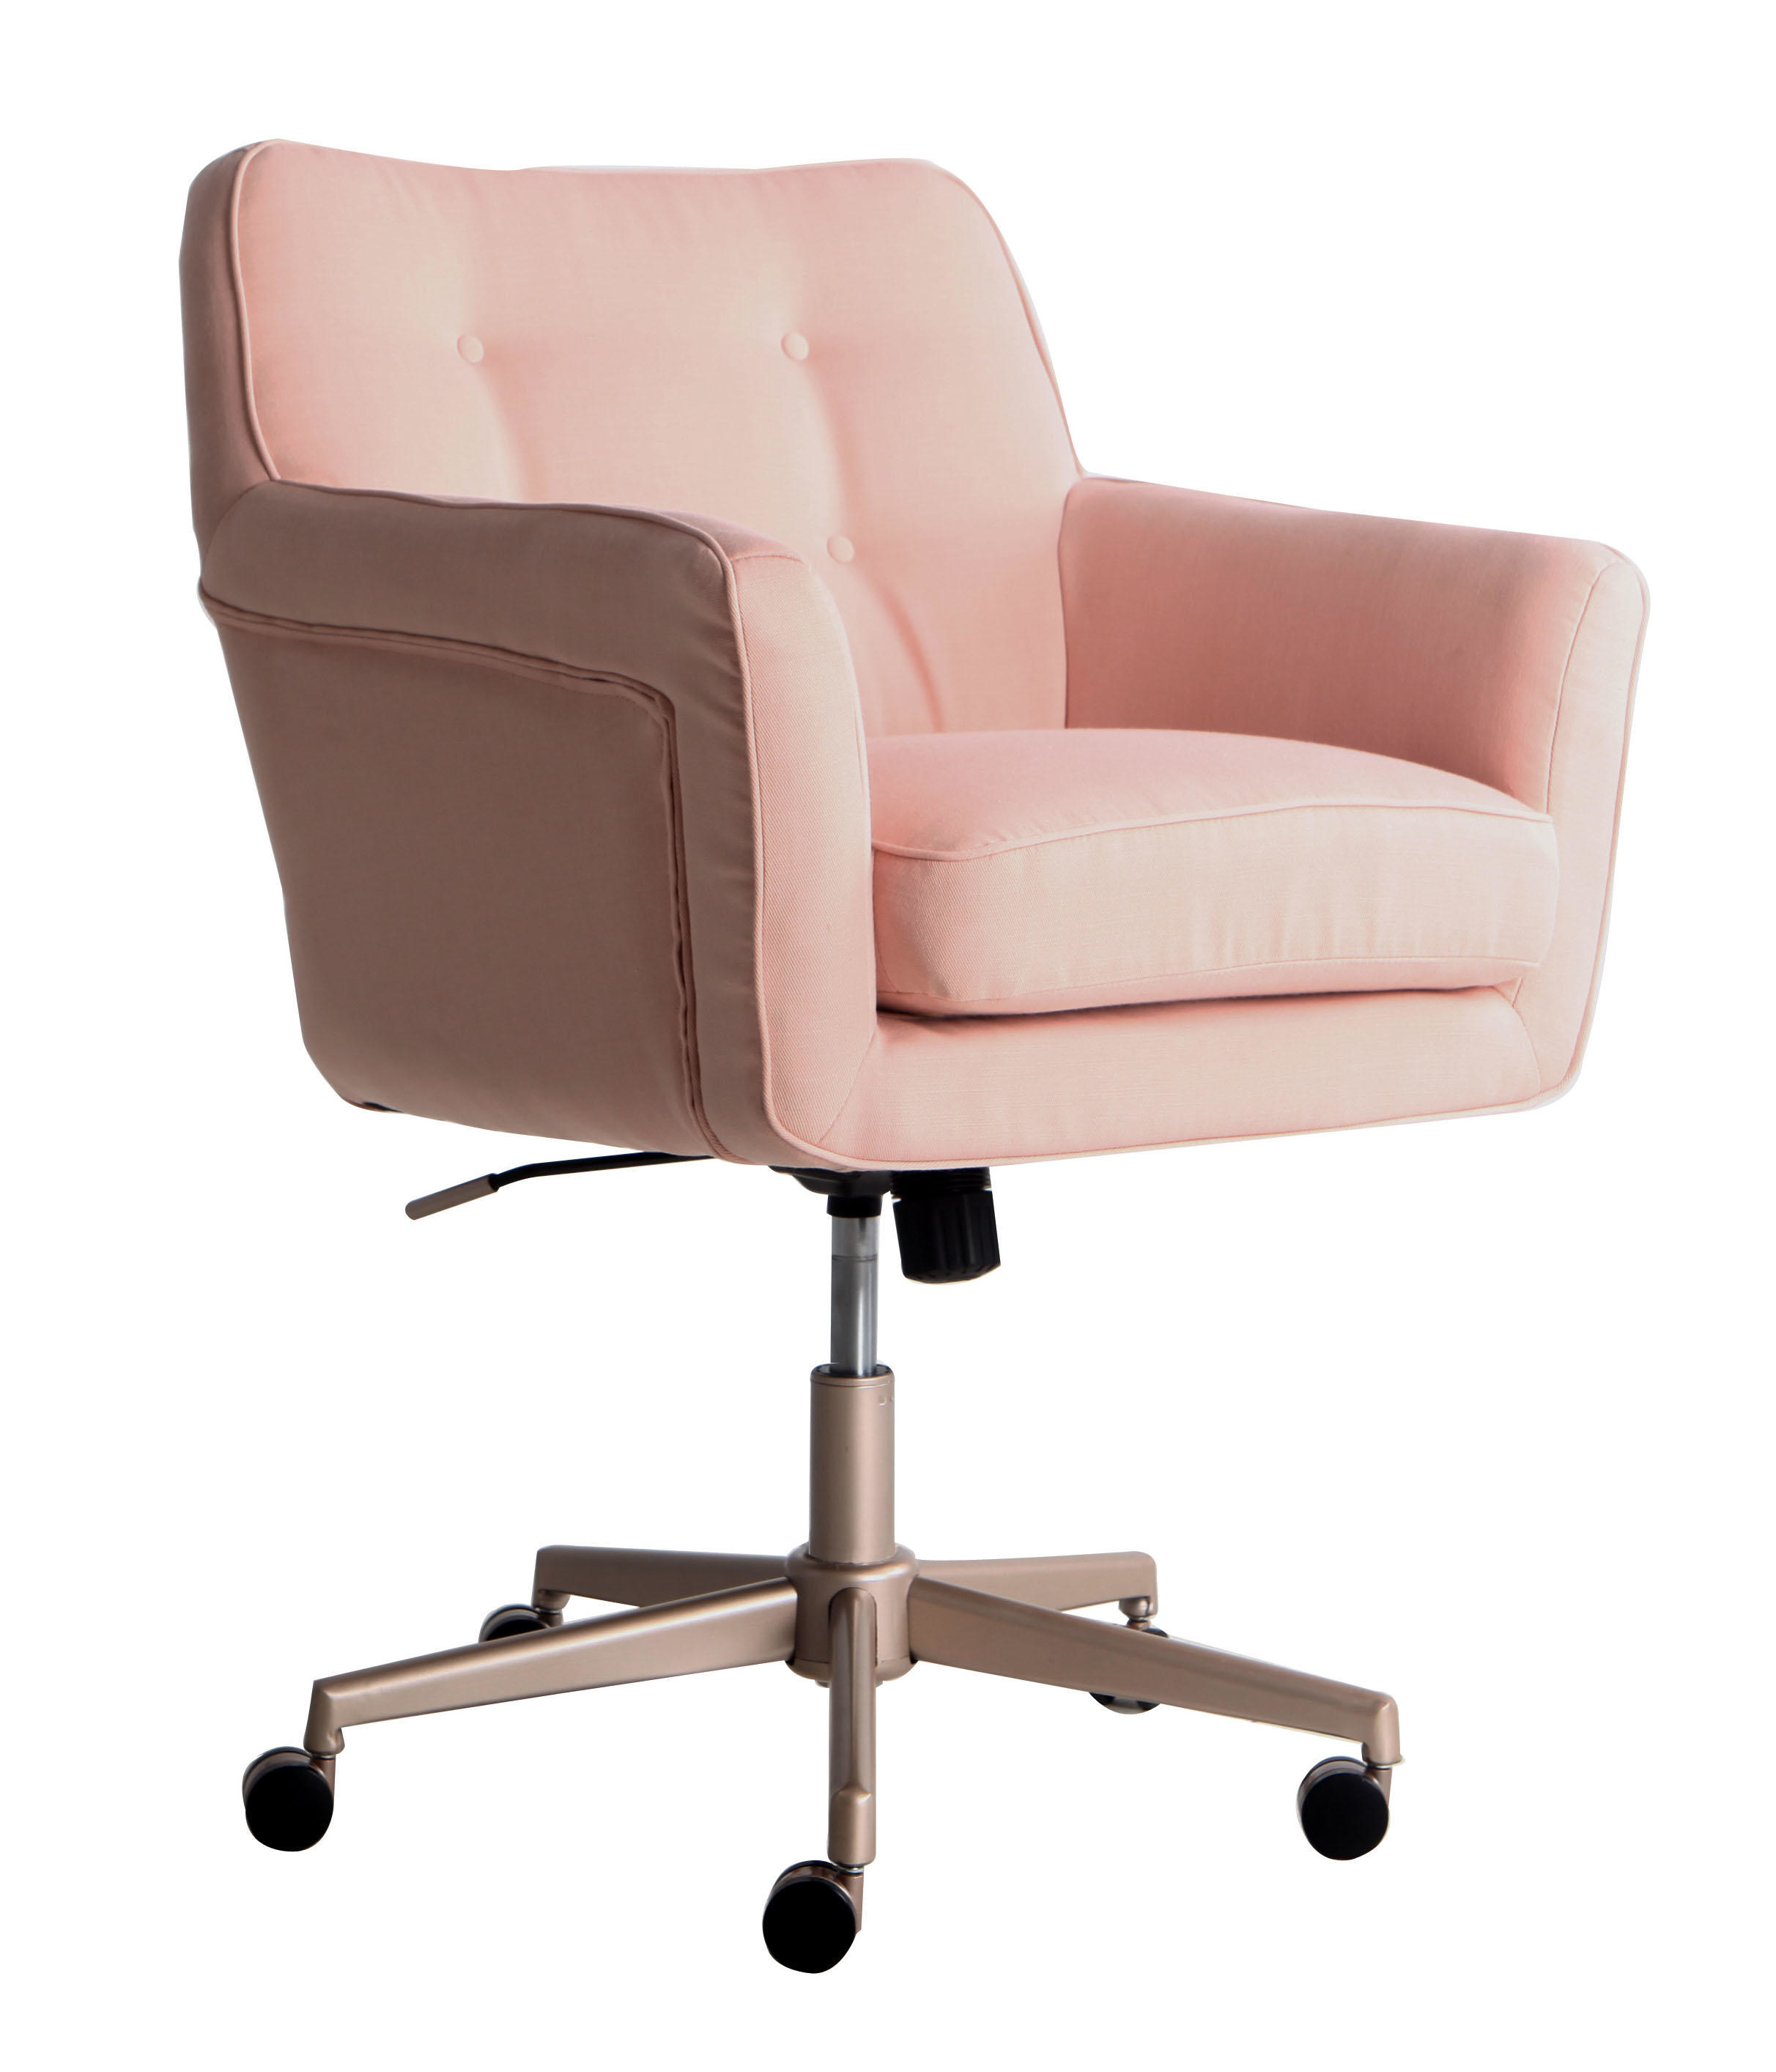 The pink office chair